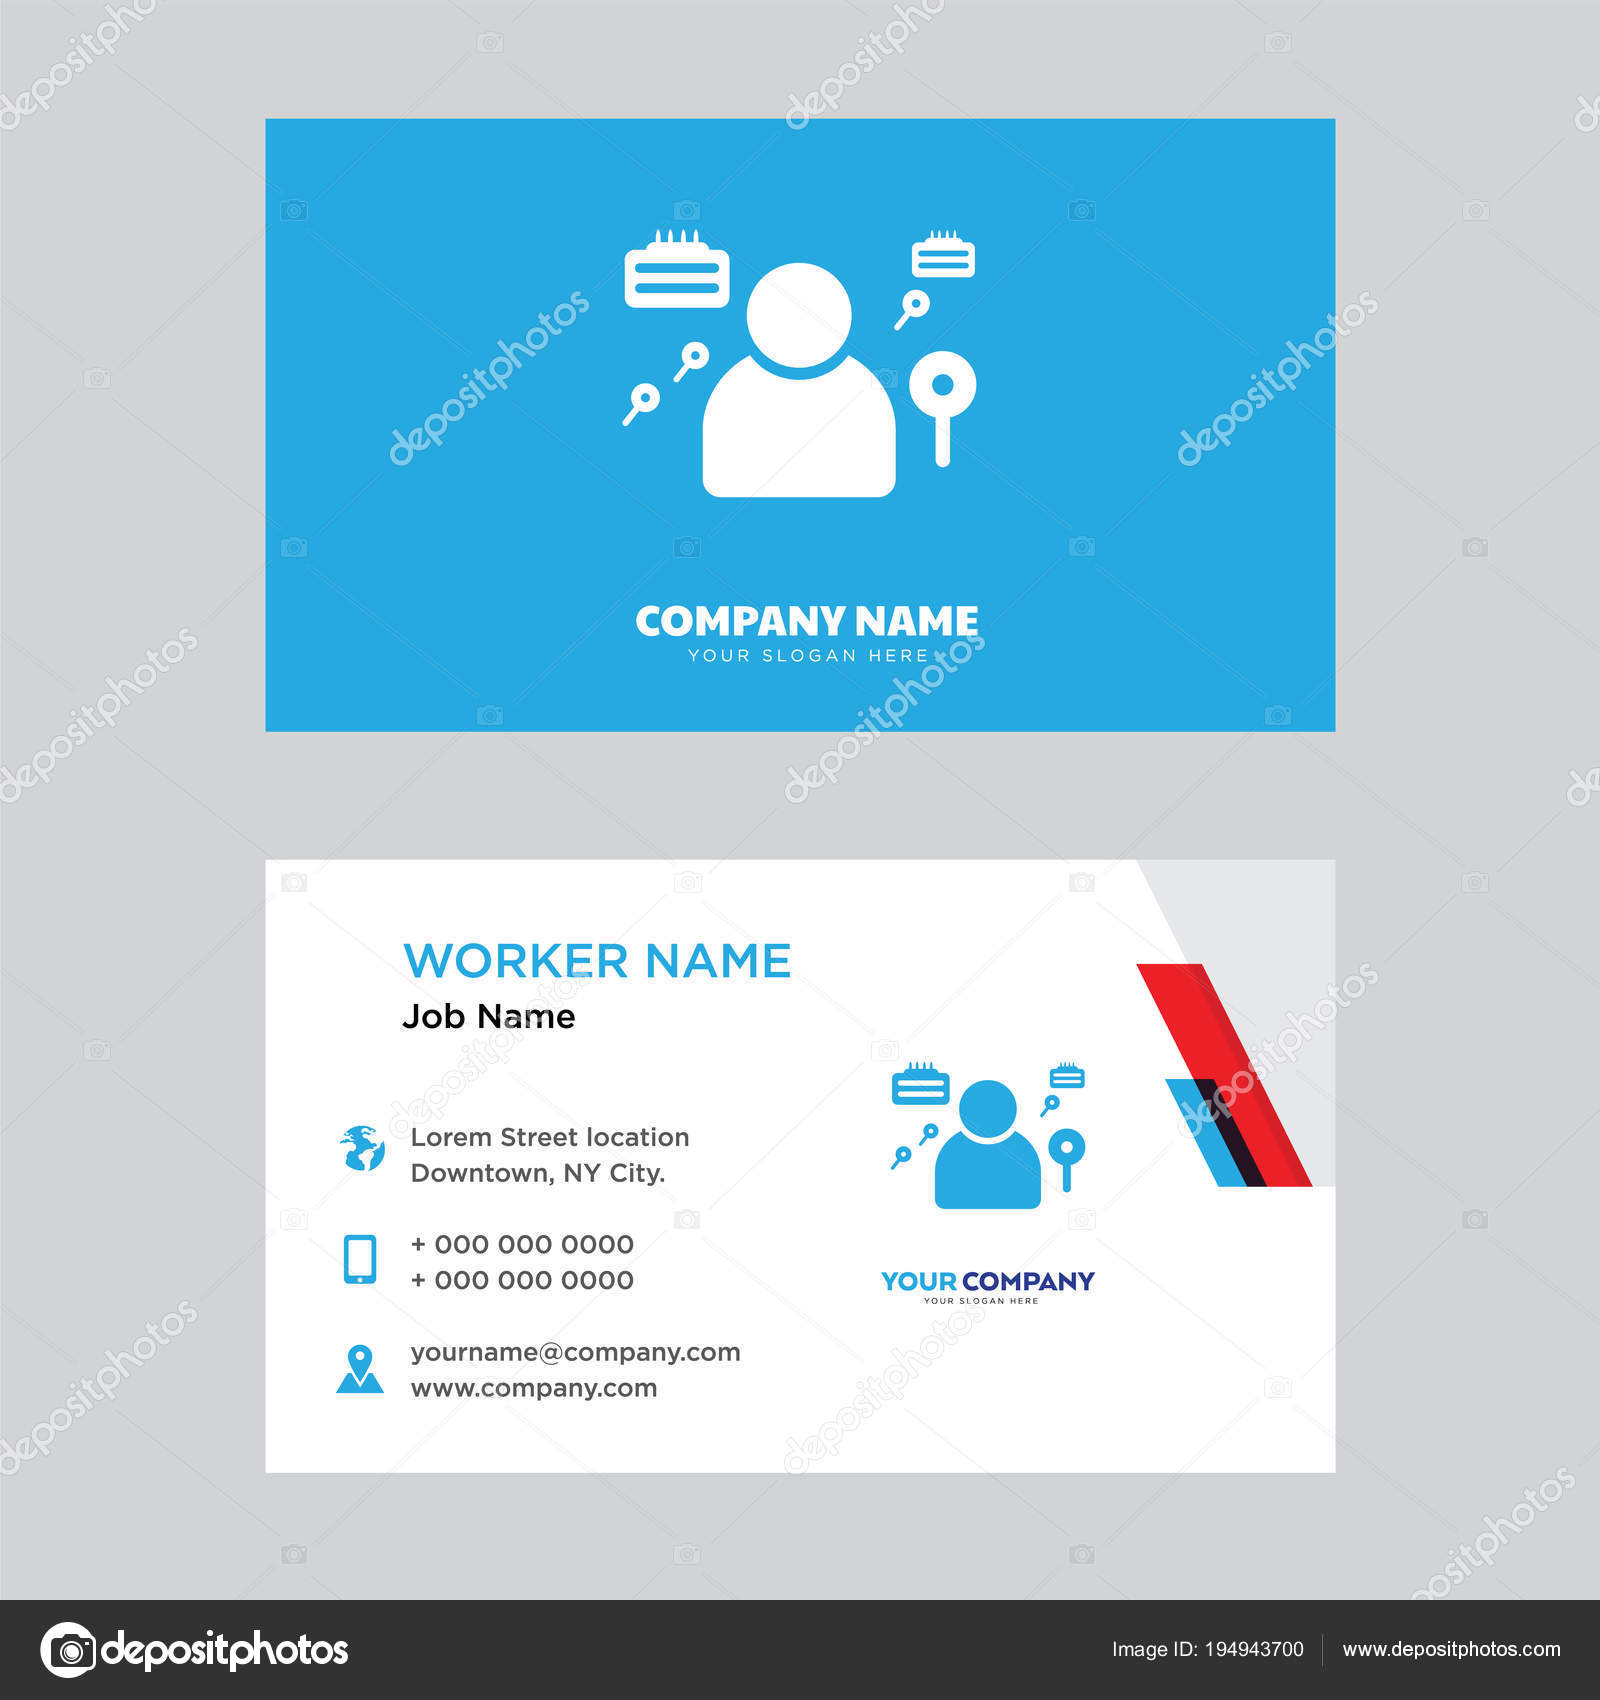 Detective business card design — Stock Vector © vector_best #194943700